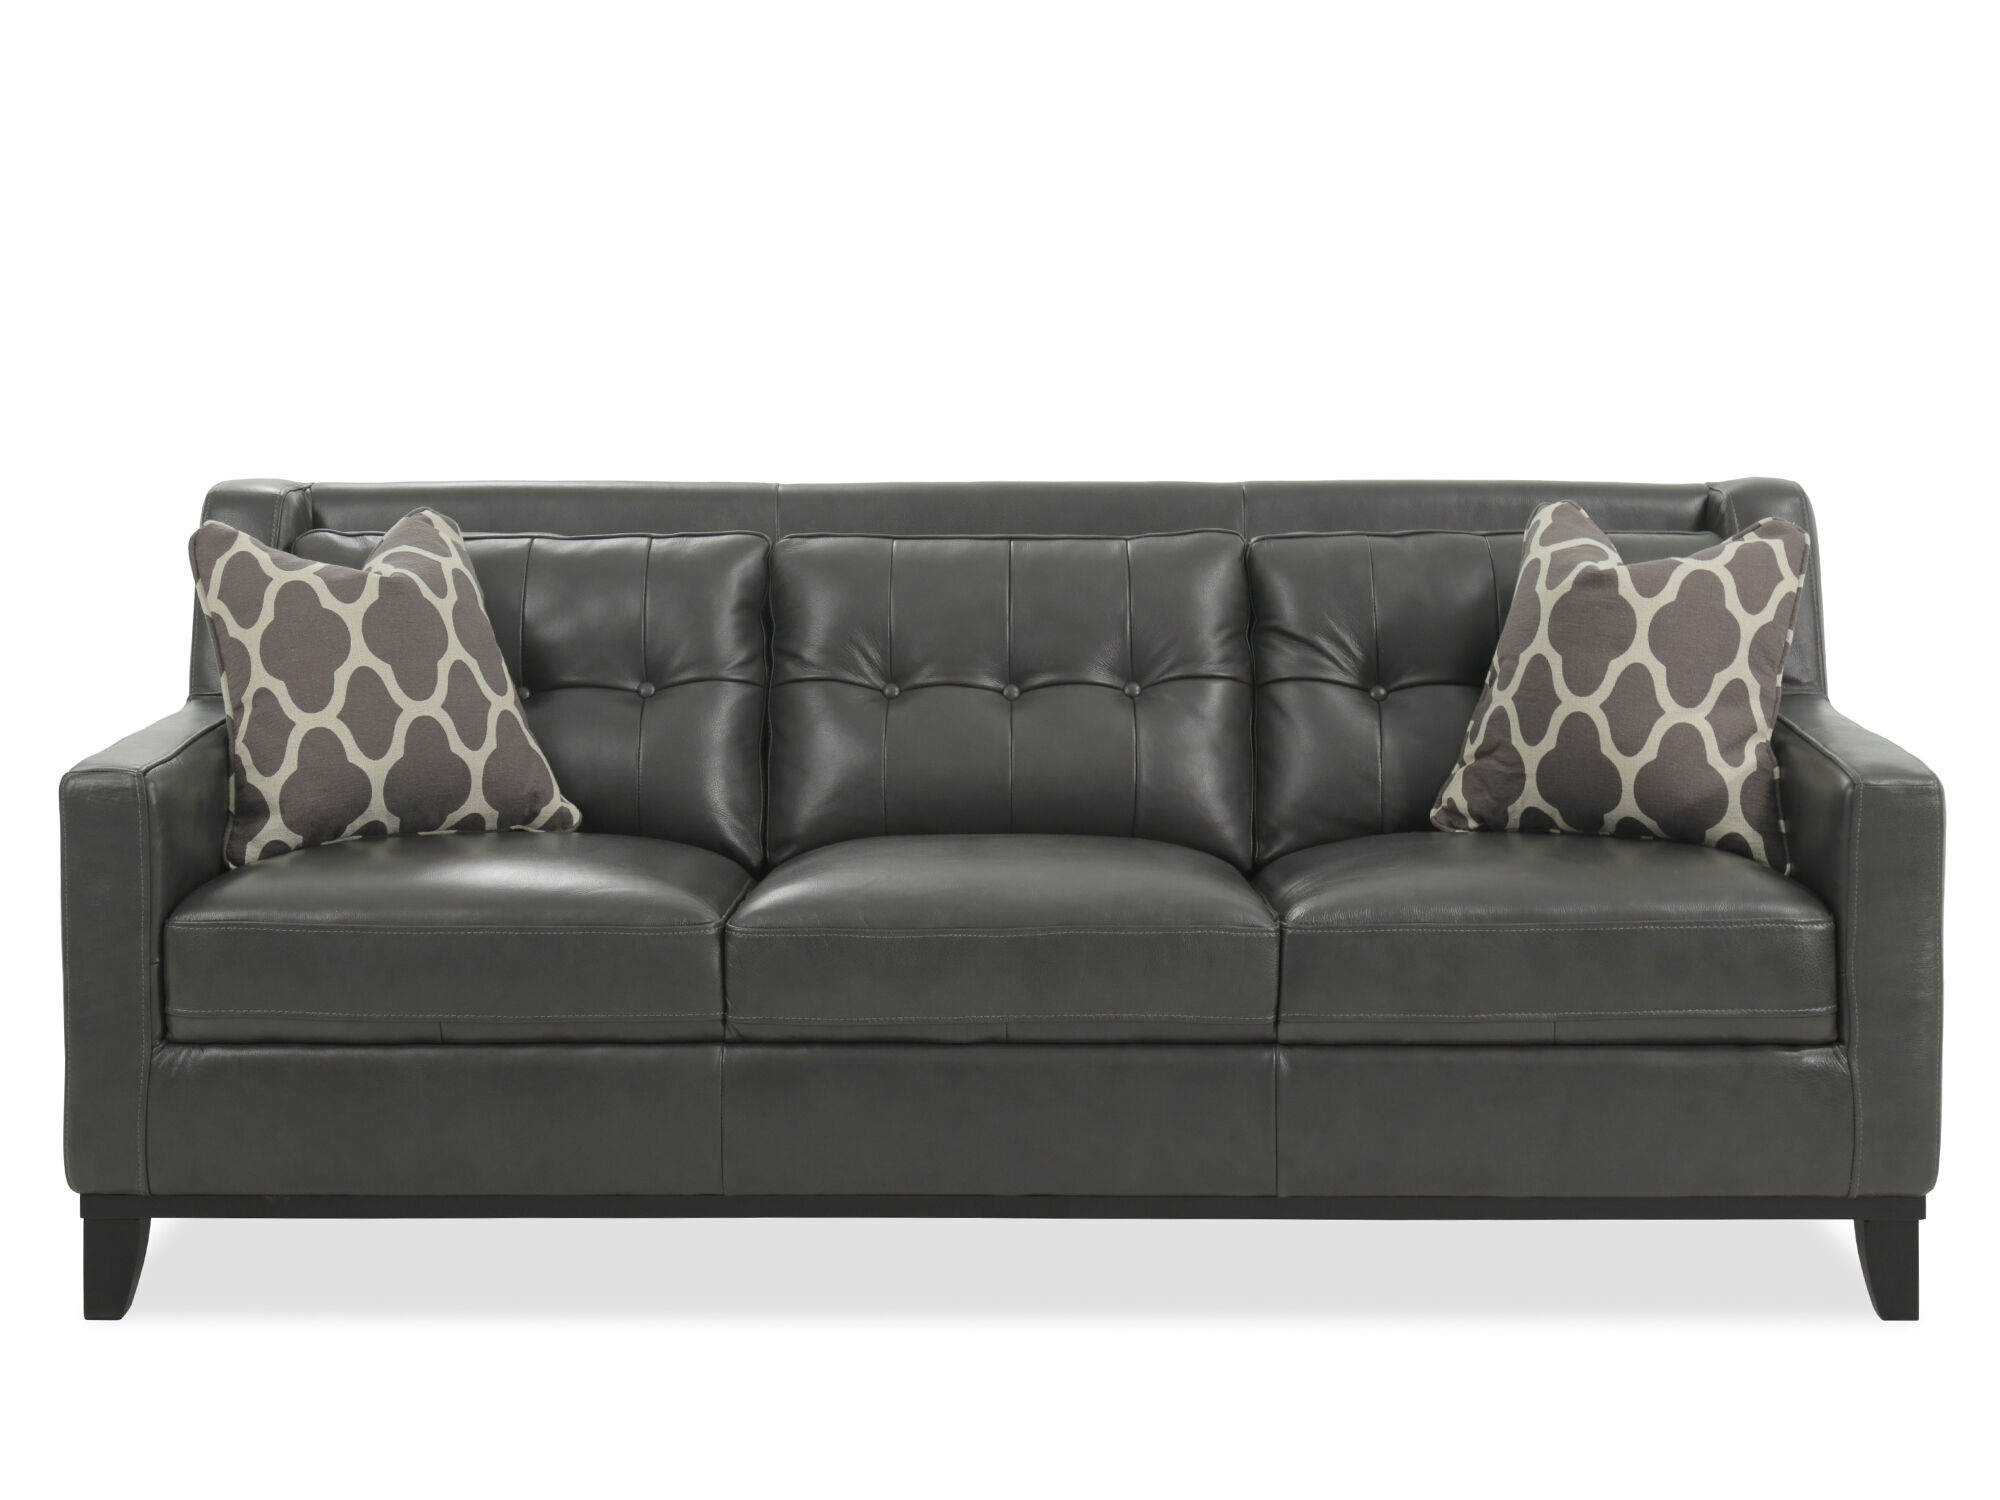 tufted leather sofa cheap milton green madrid futon bed with cup holder button in gunmetal mathis brothers furniture